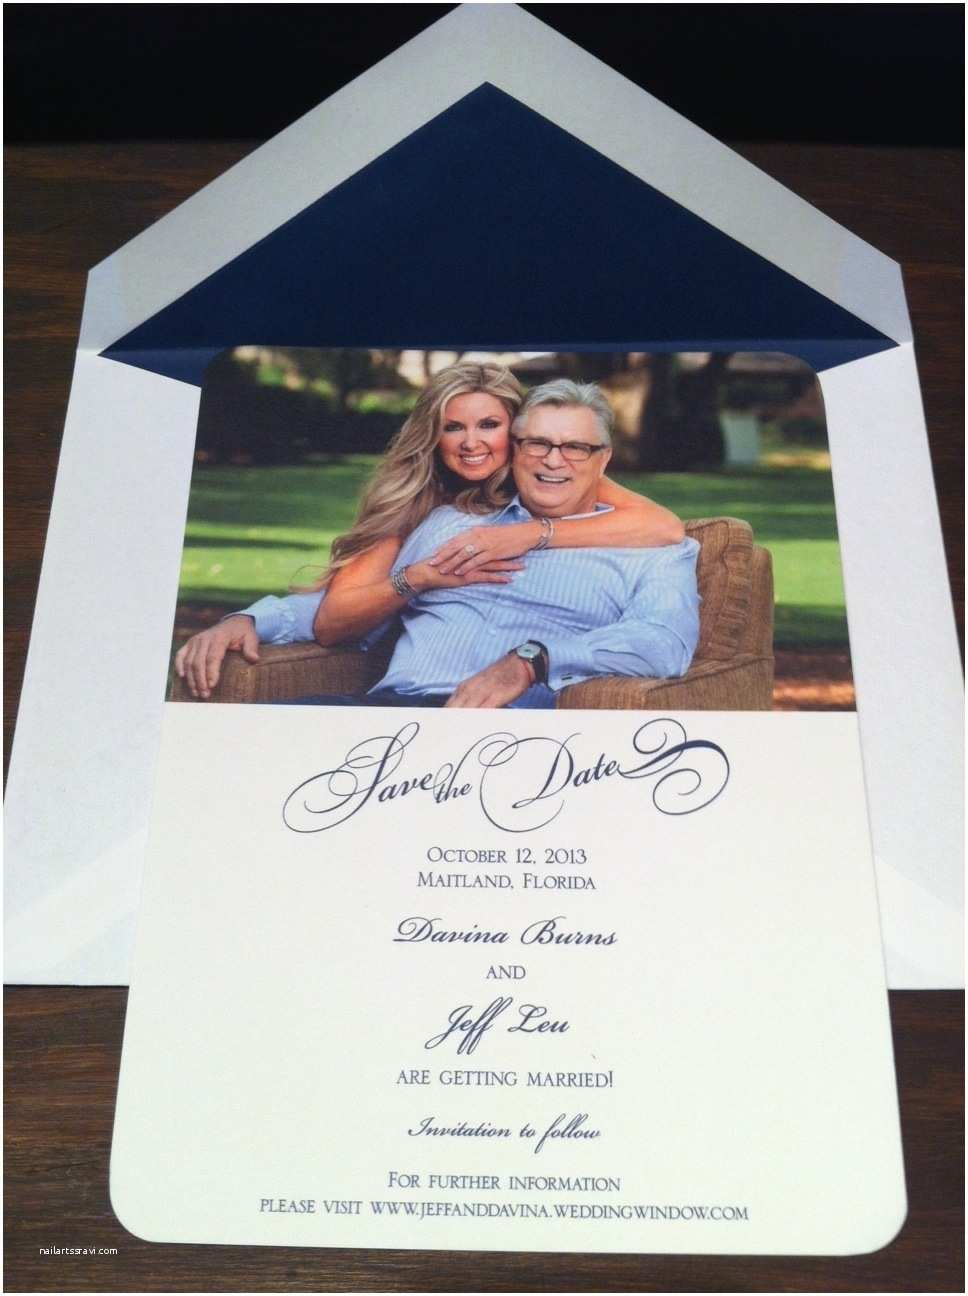 Wedding Invitations orlando Fl Printing Wedding Programs orlando Bittorrentspider